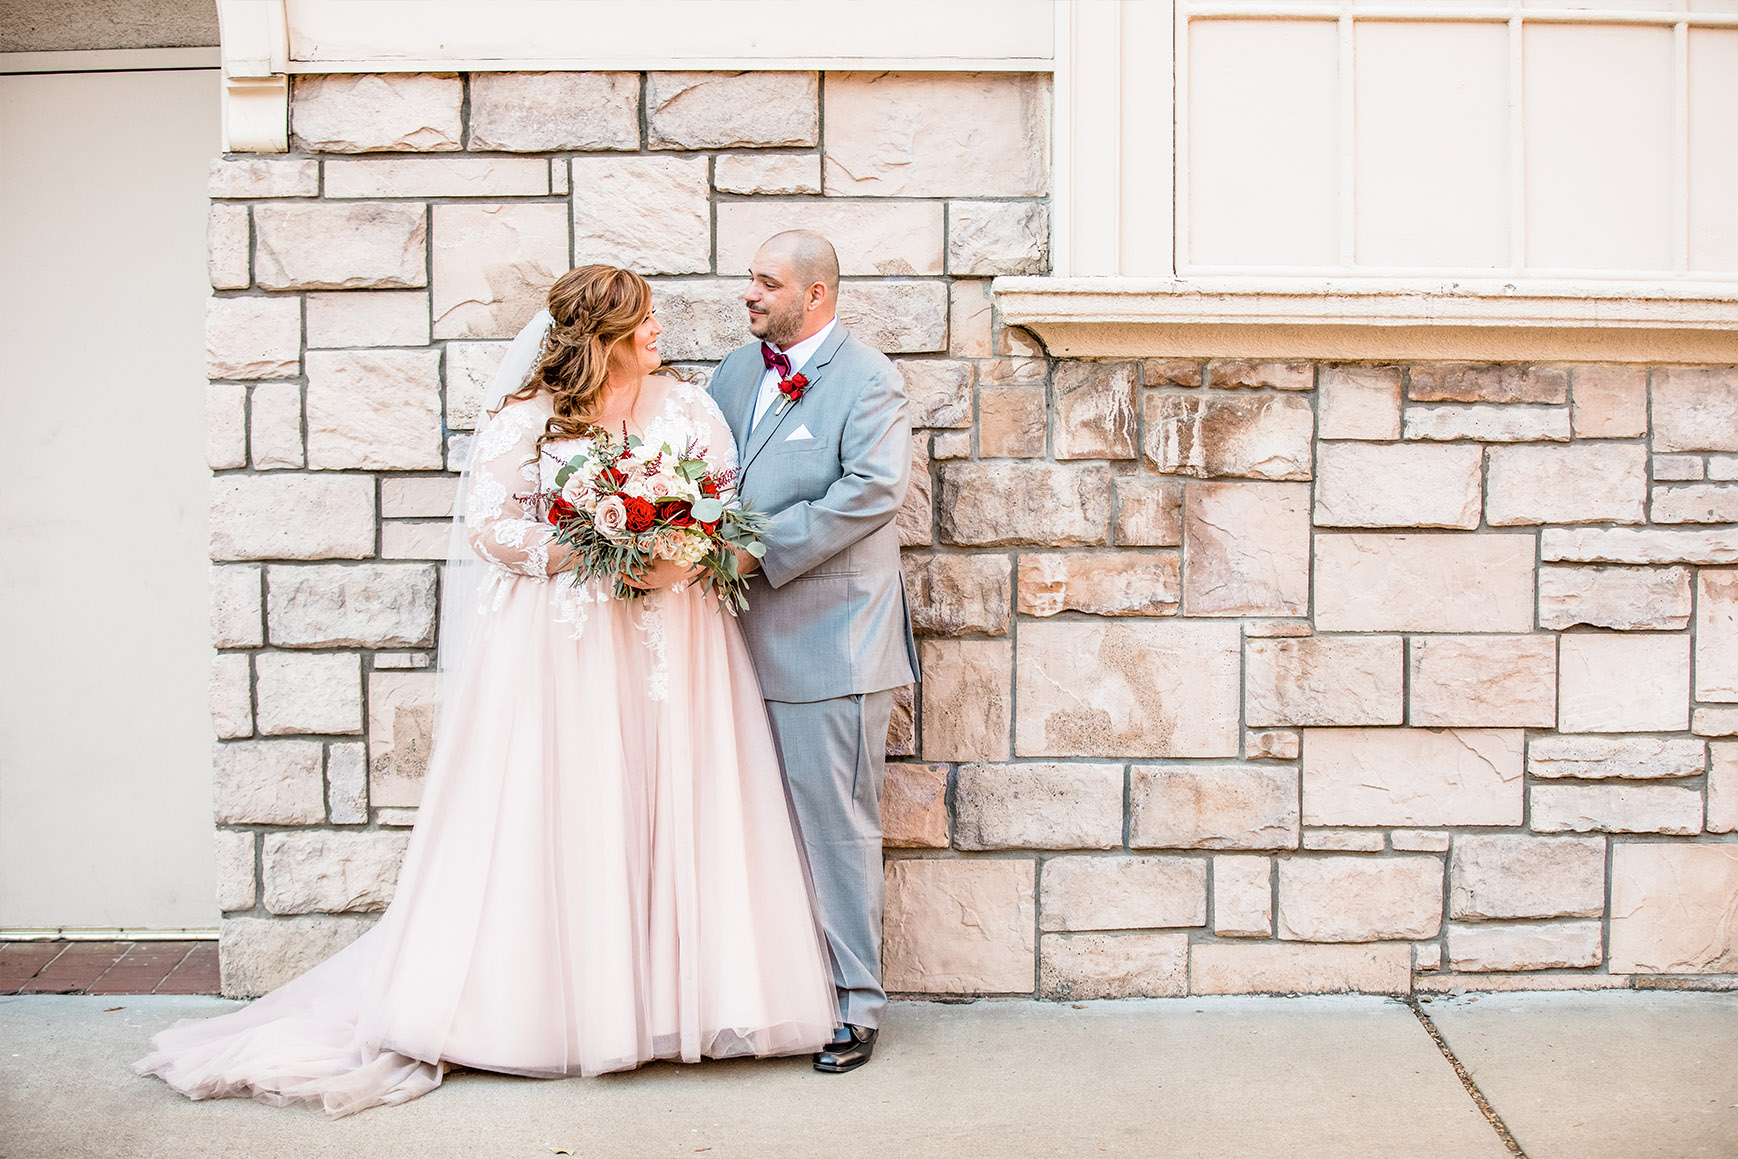 Bride & Groom - Sacramento, California - Sacramento County - Wedgewood Weddings